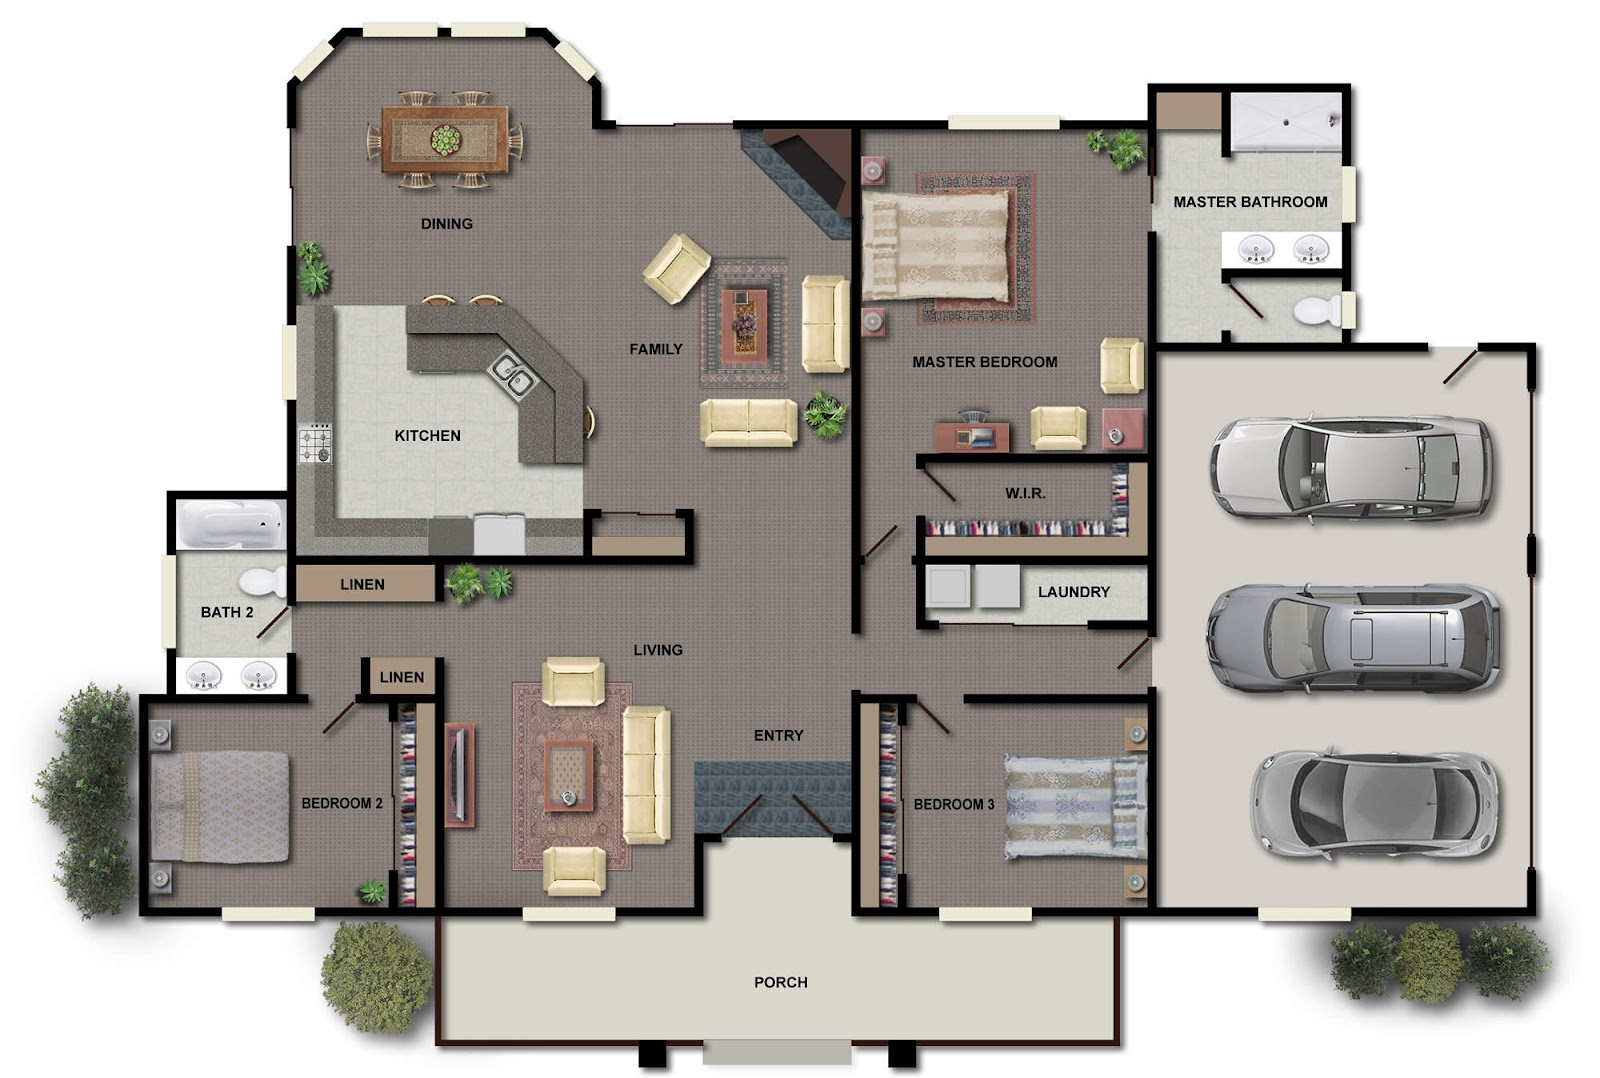 modern house floor plans home design ideas u home design On modern house floor plans